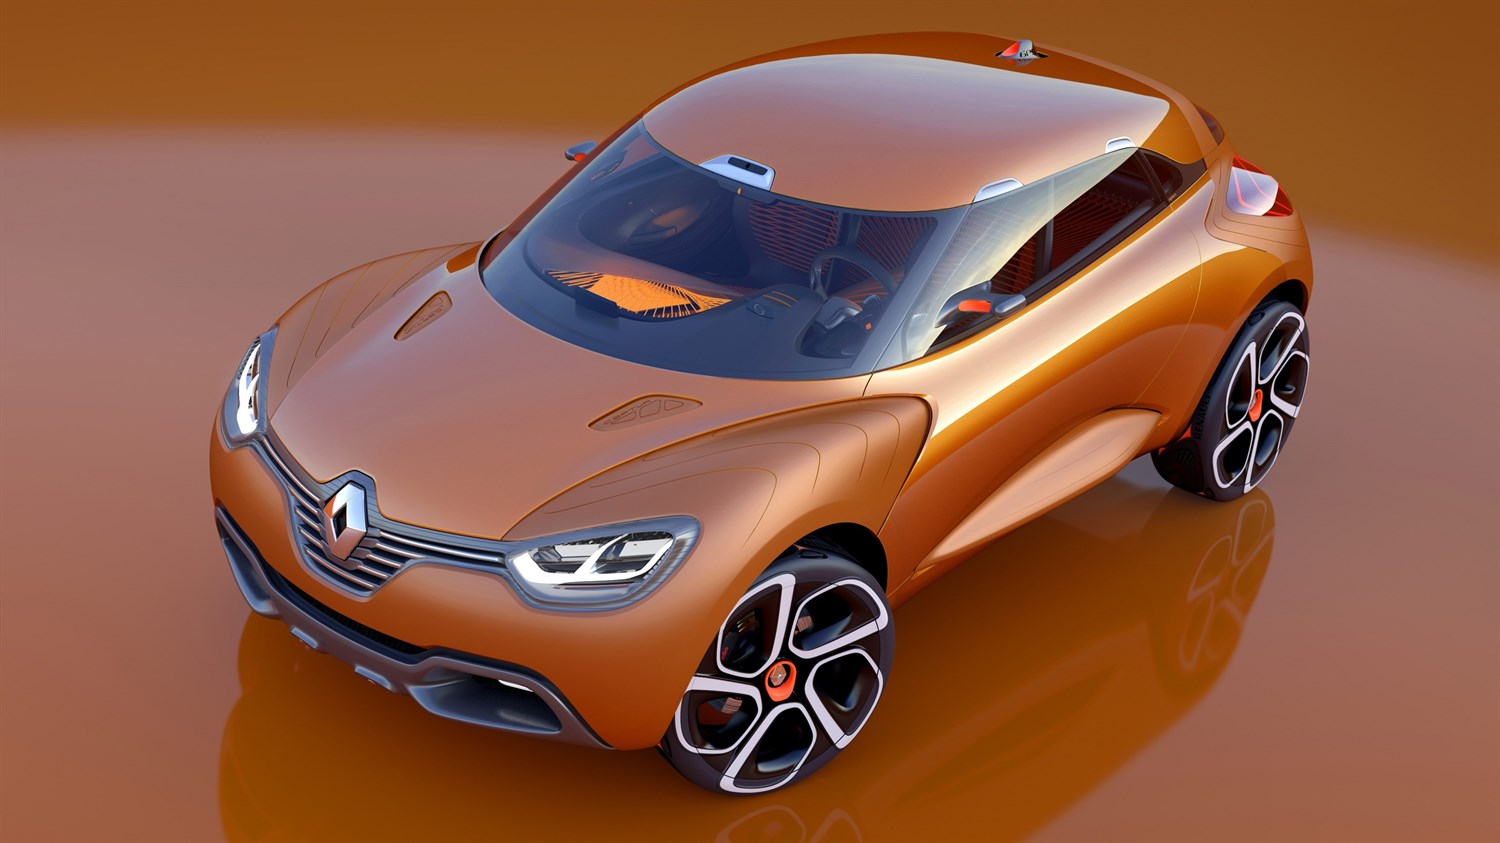 Renault CAPTUR concept car dynamic design exterior top view